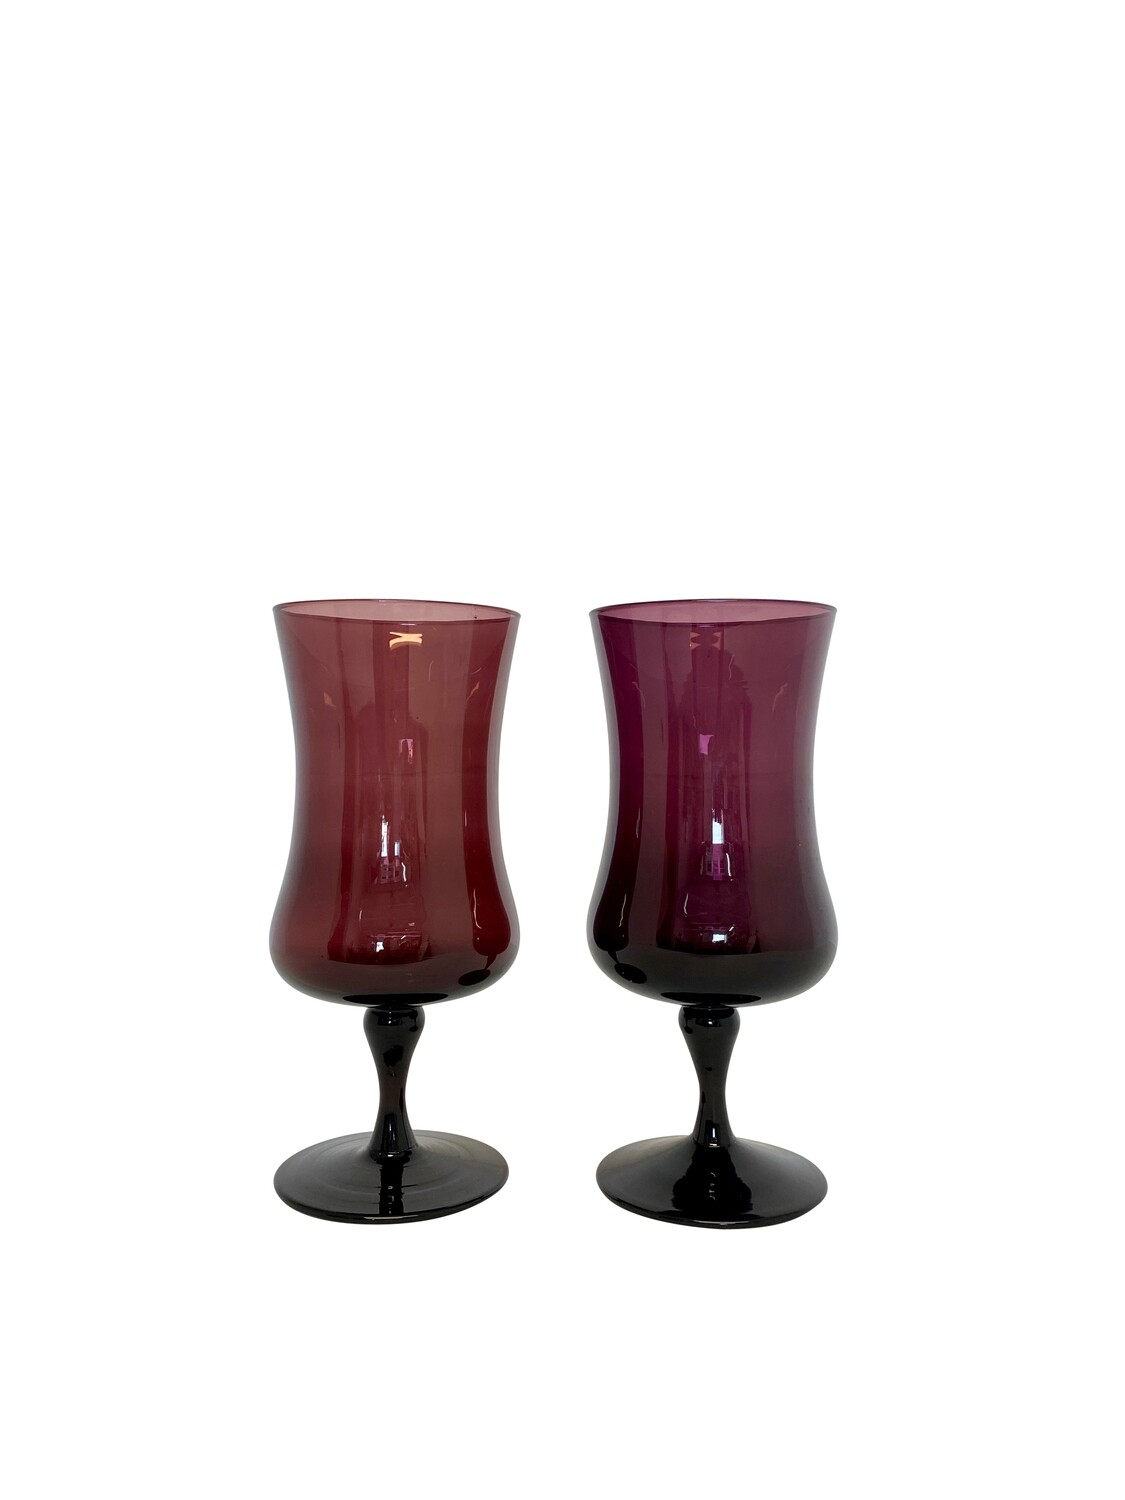 Mid Century Modern Footed Vases in Purple Hues